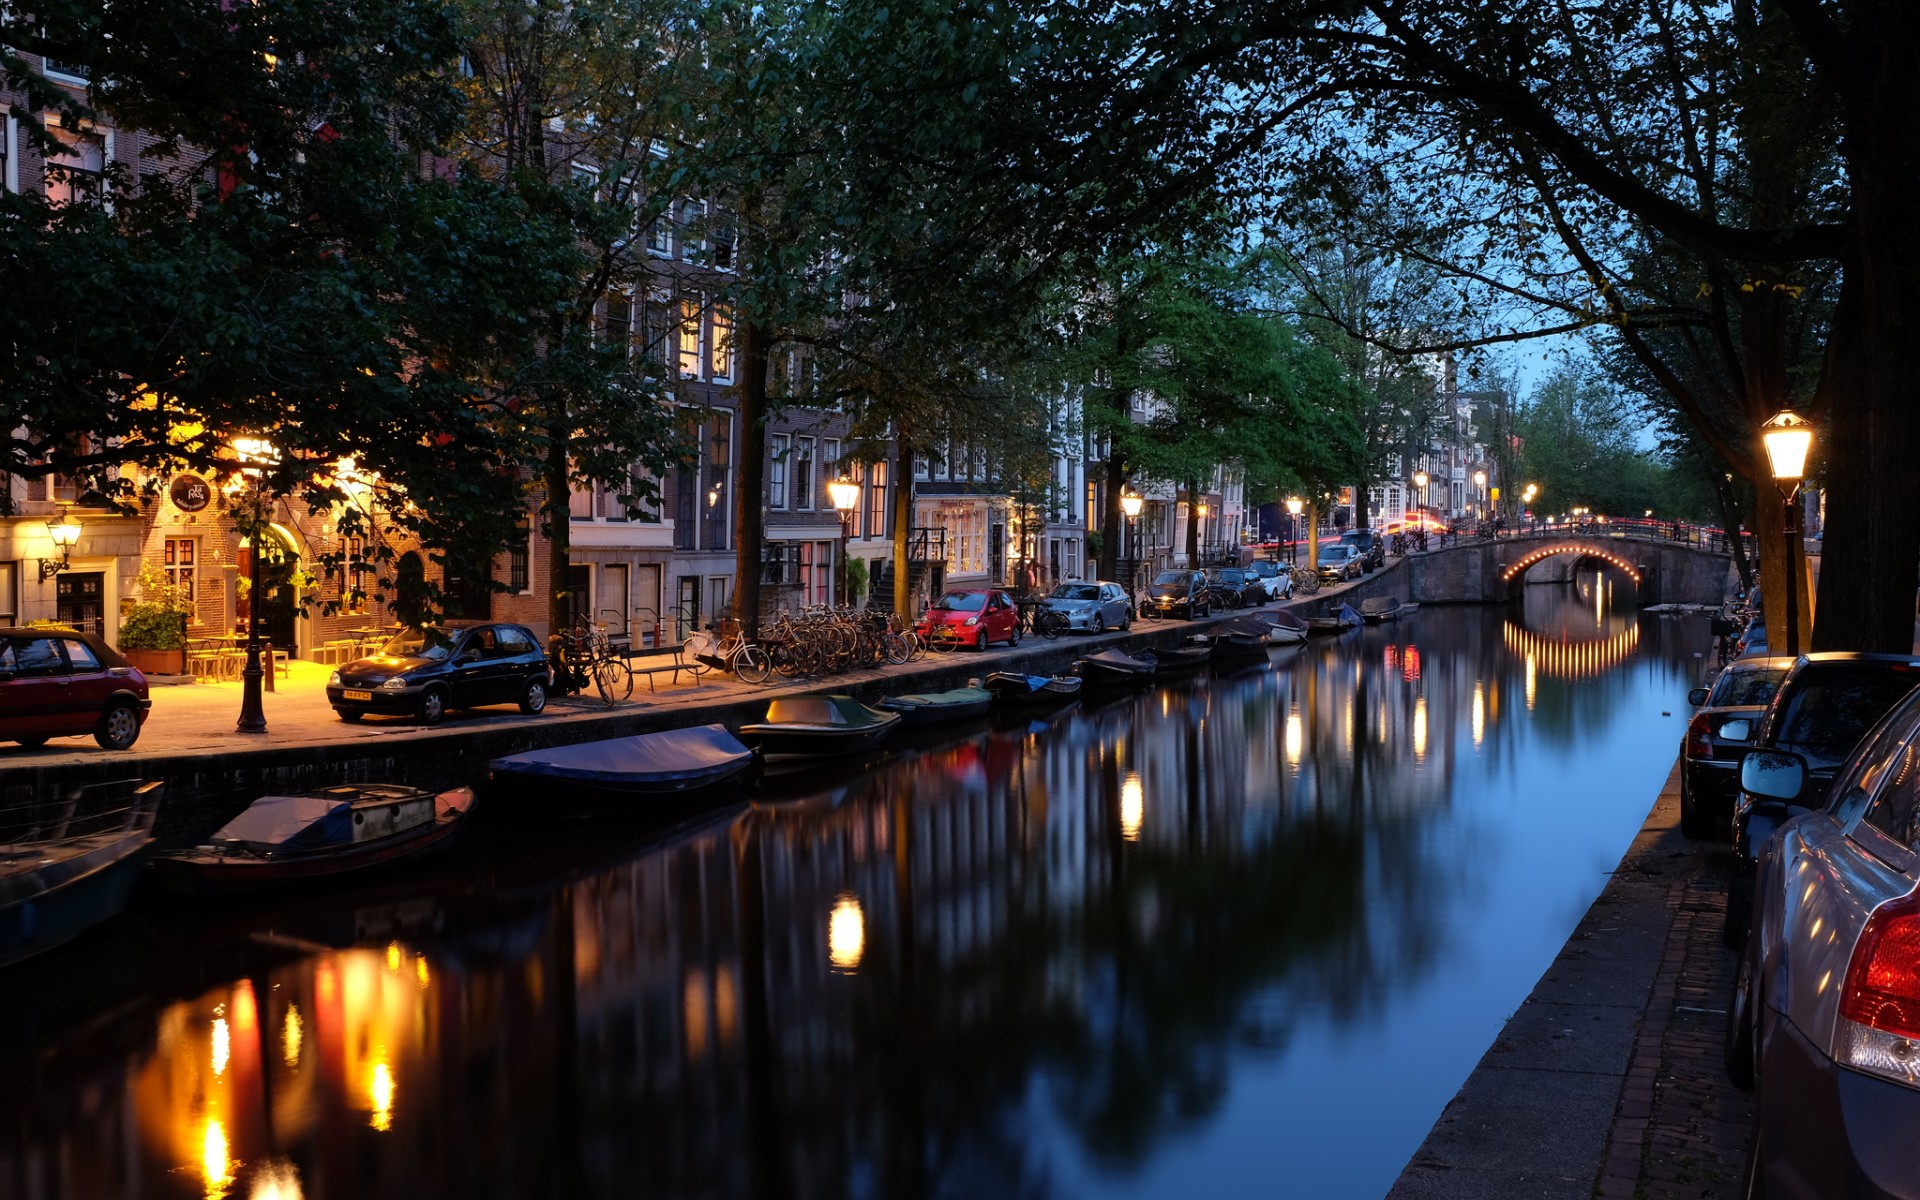 71 amsterdam hd wallpapers | background images - wallpaper abyss